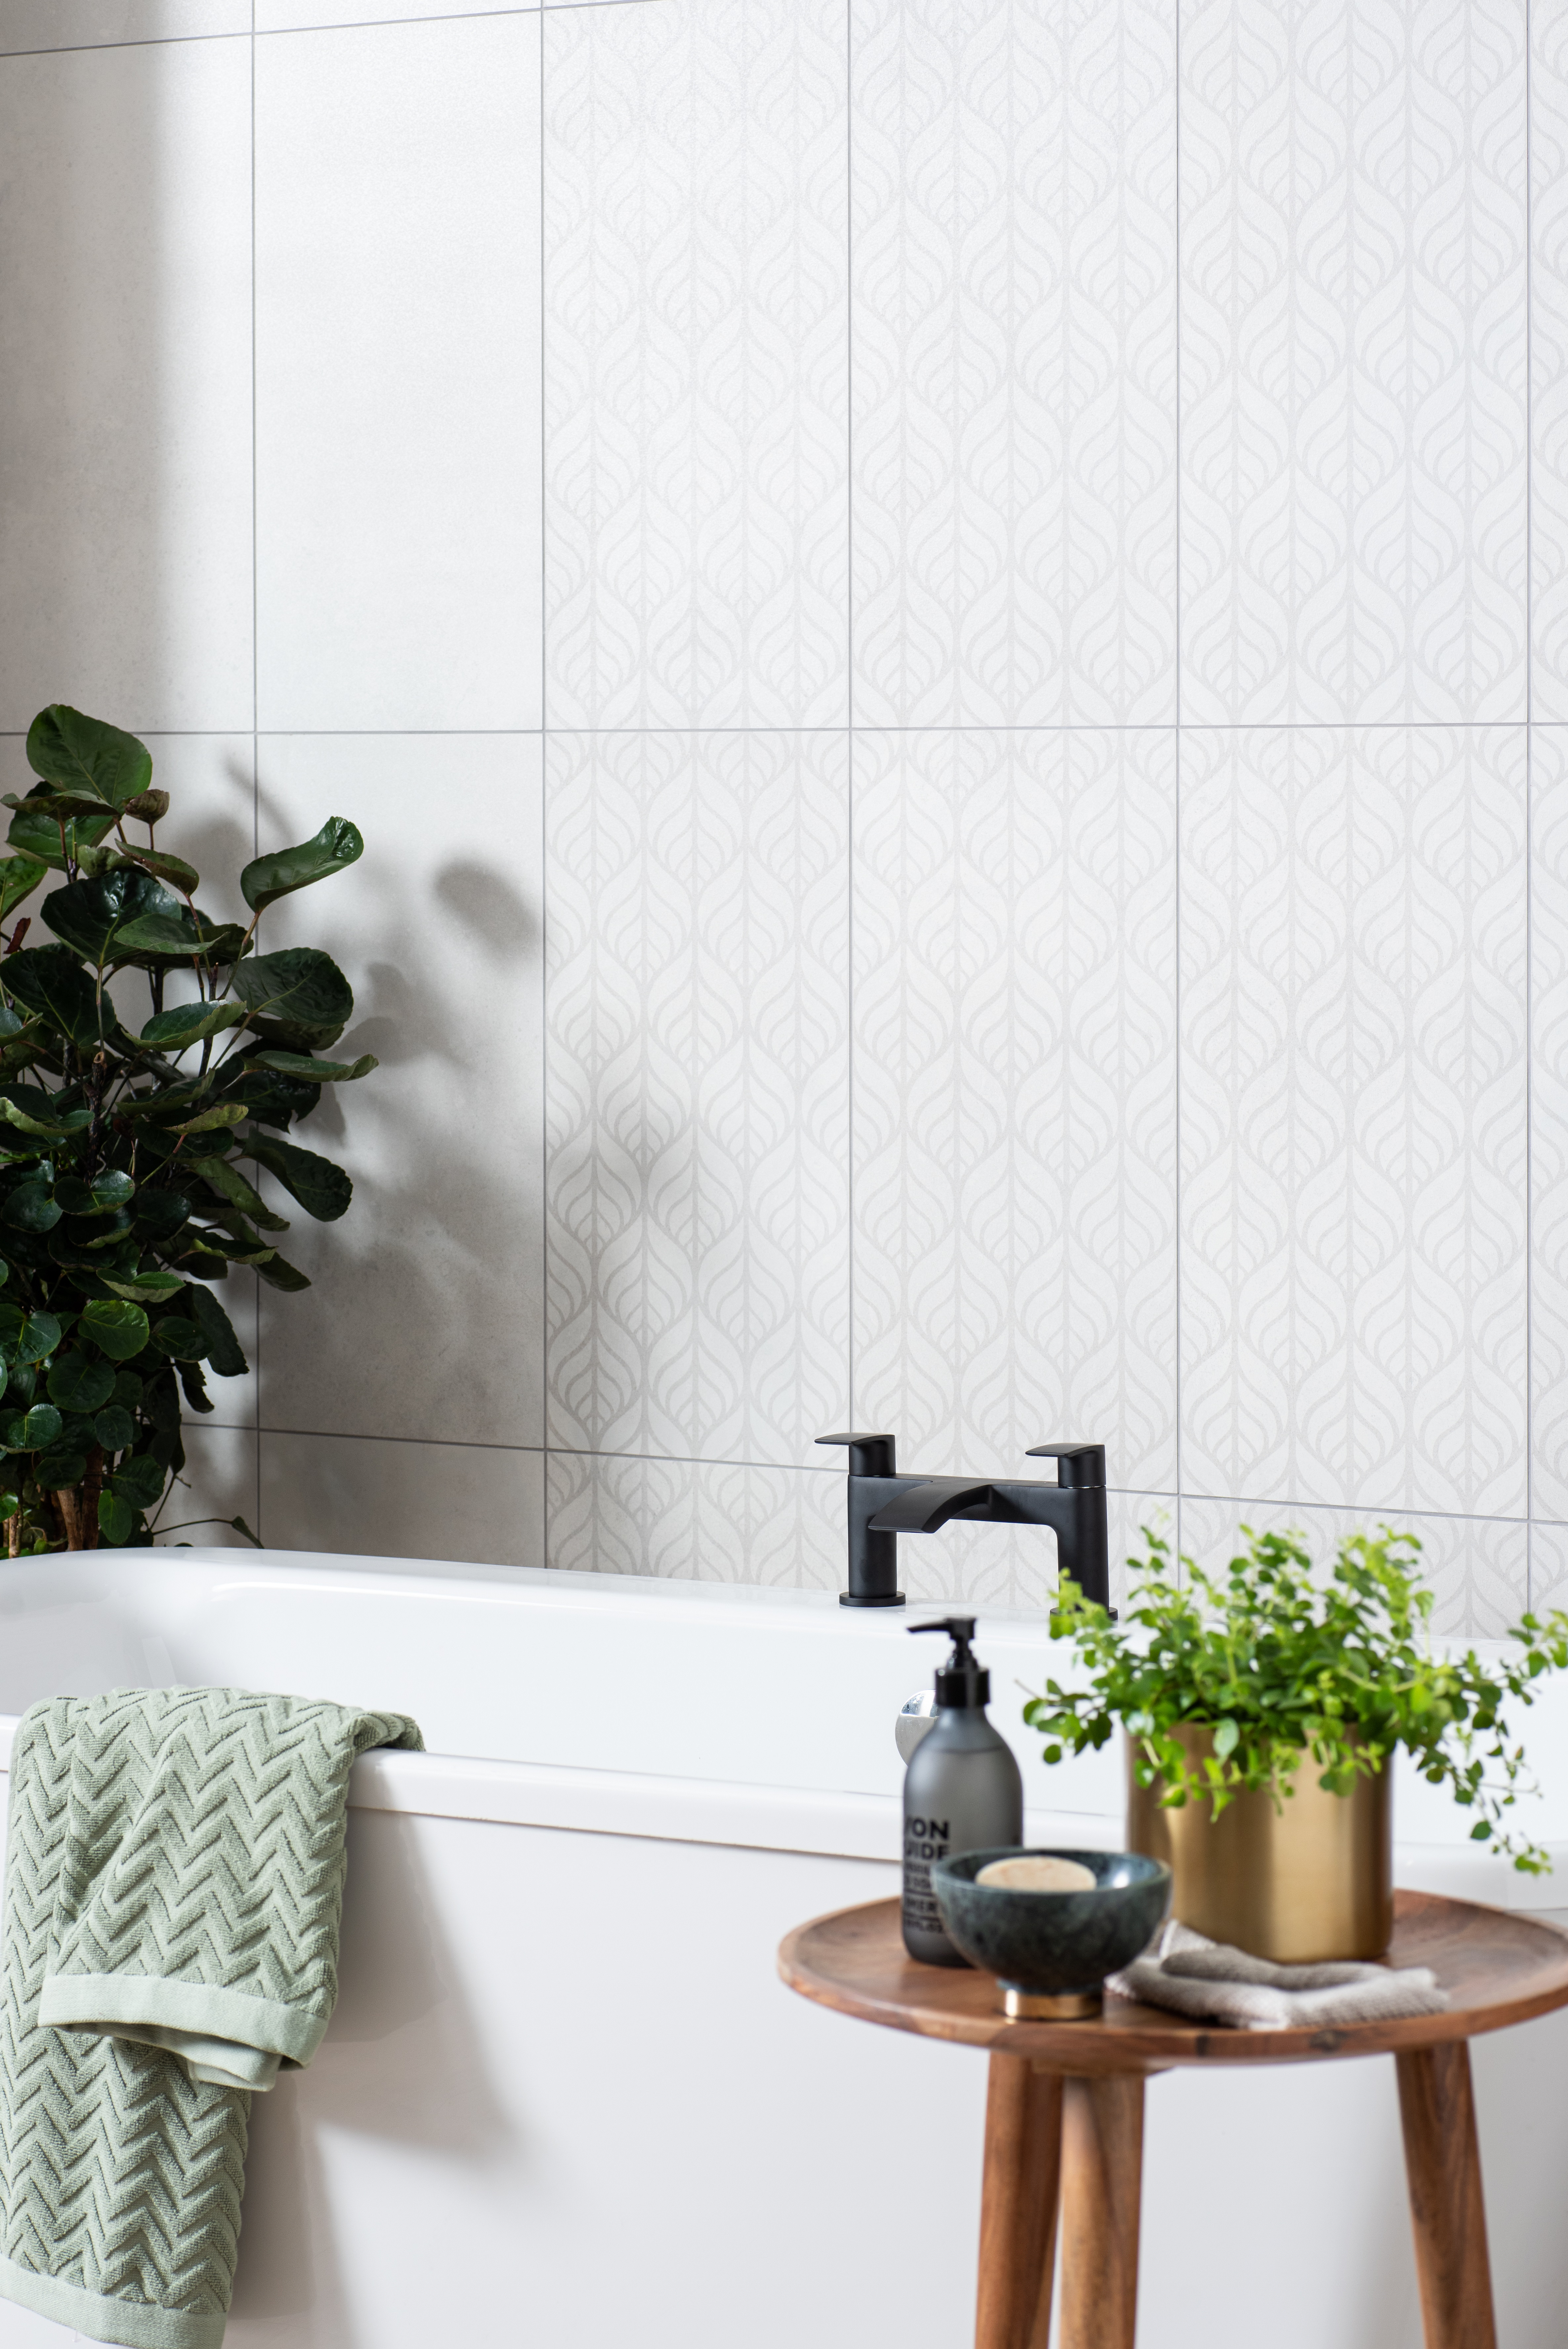 living-trellis-plait-wall-tiles-from-original-style